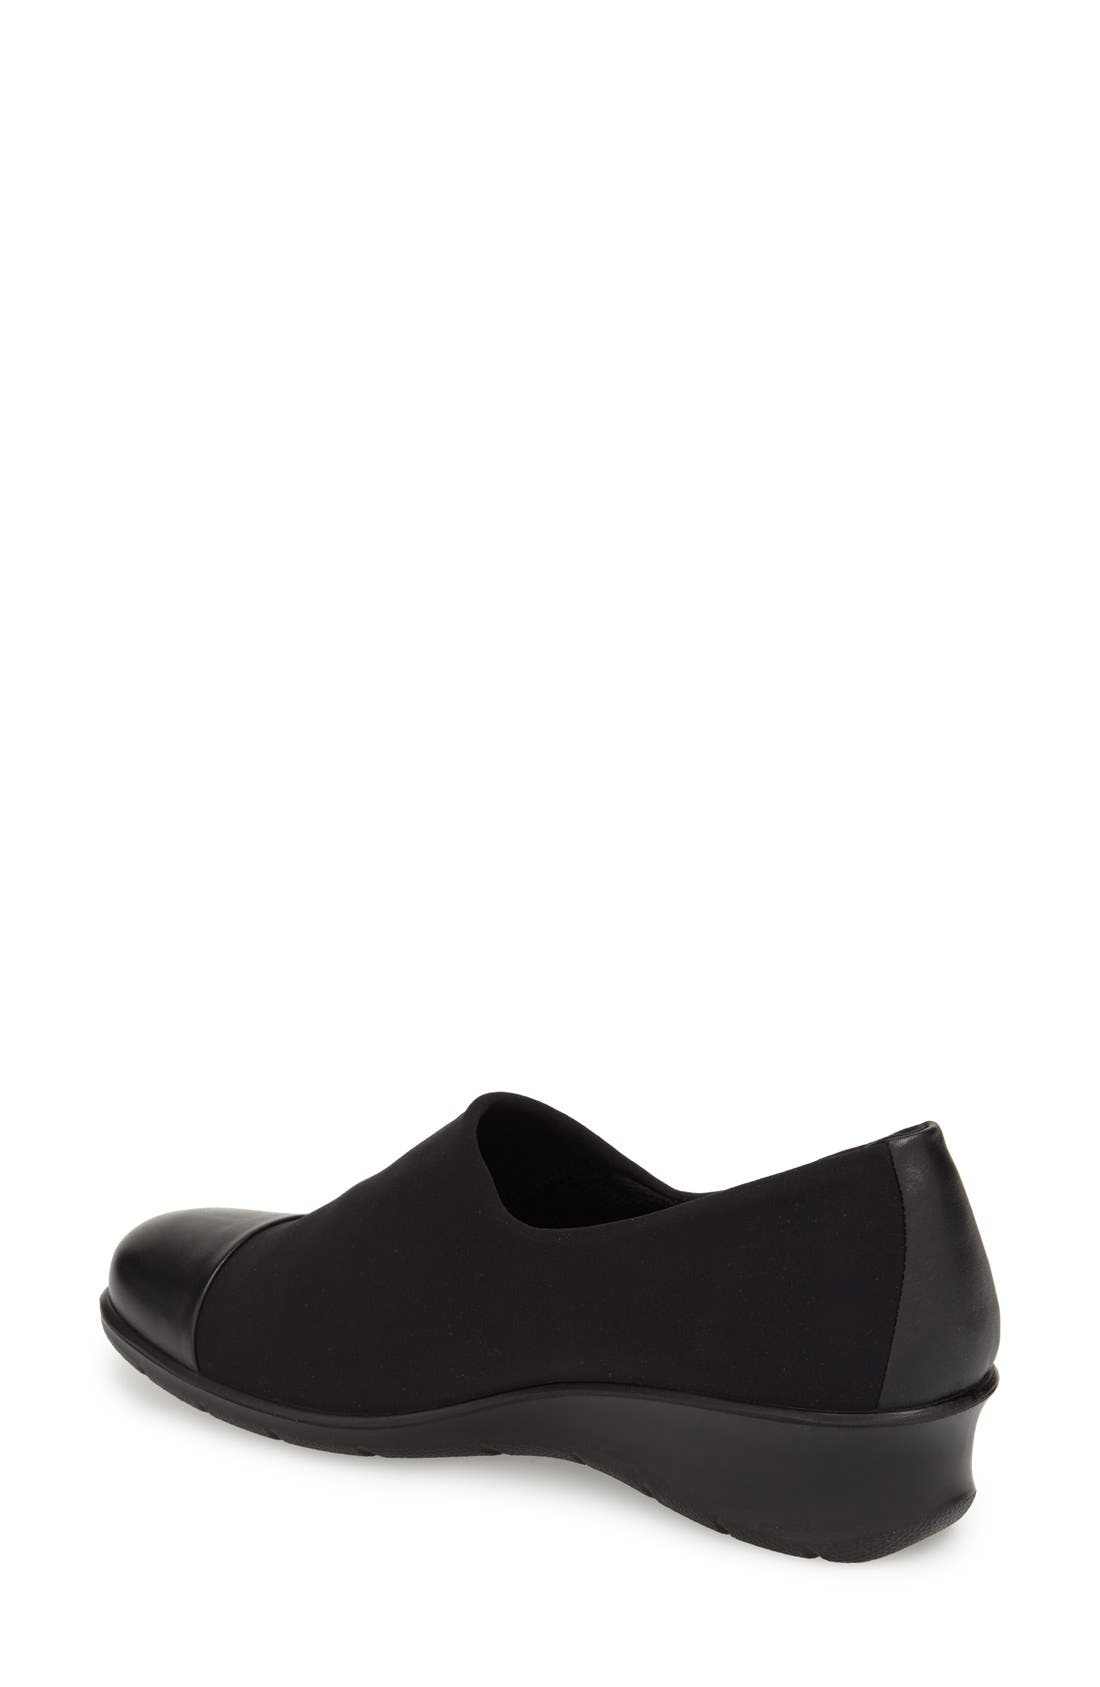 'Felicia GTX' Waterproof Wedge Loafer,                             Alternate thumbnail 4, color,                             BLACK GORE FABRIC